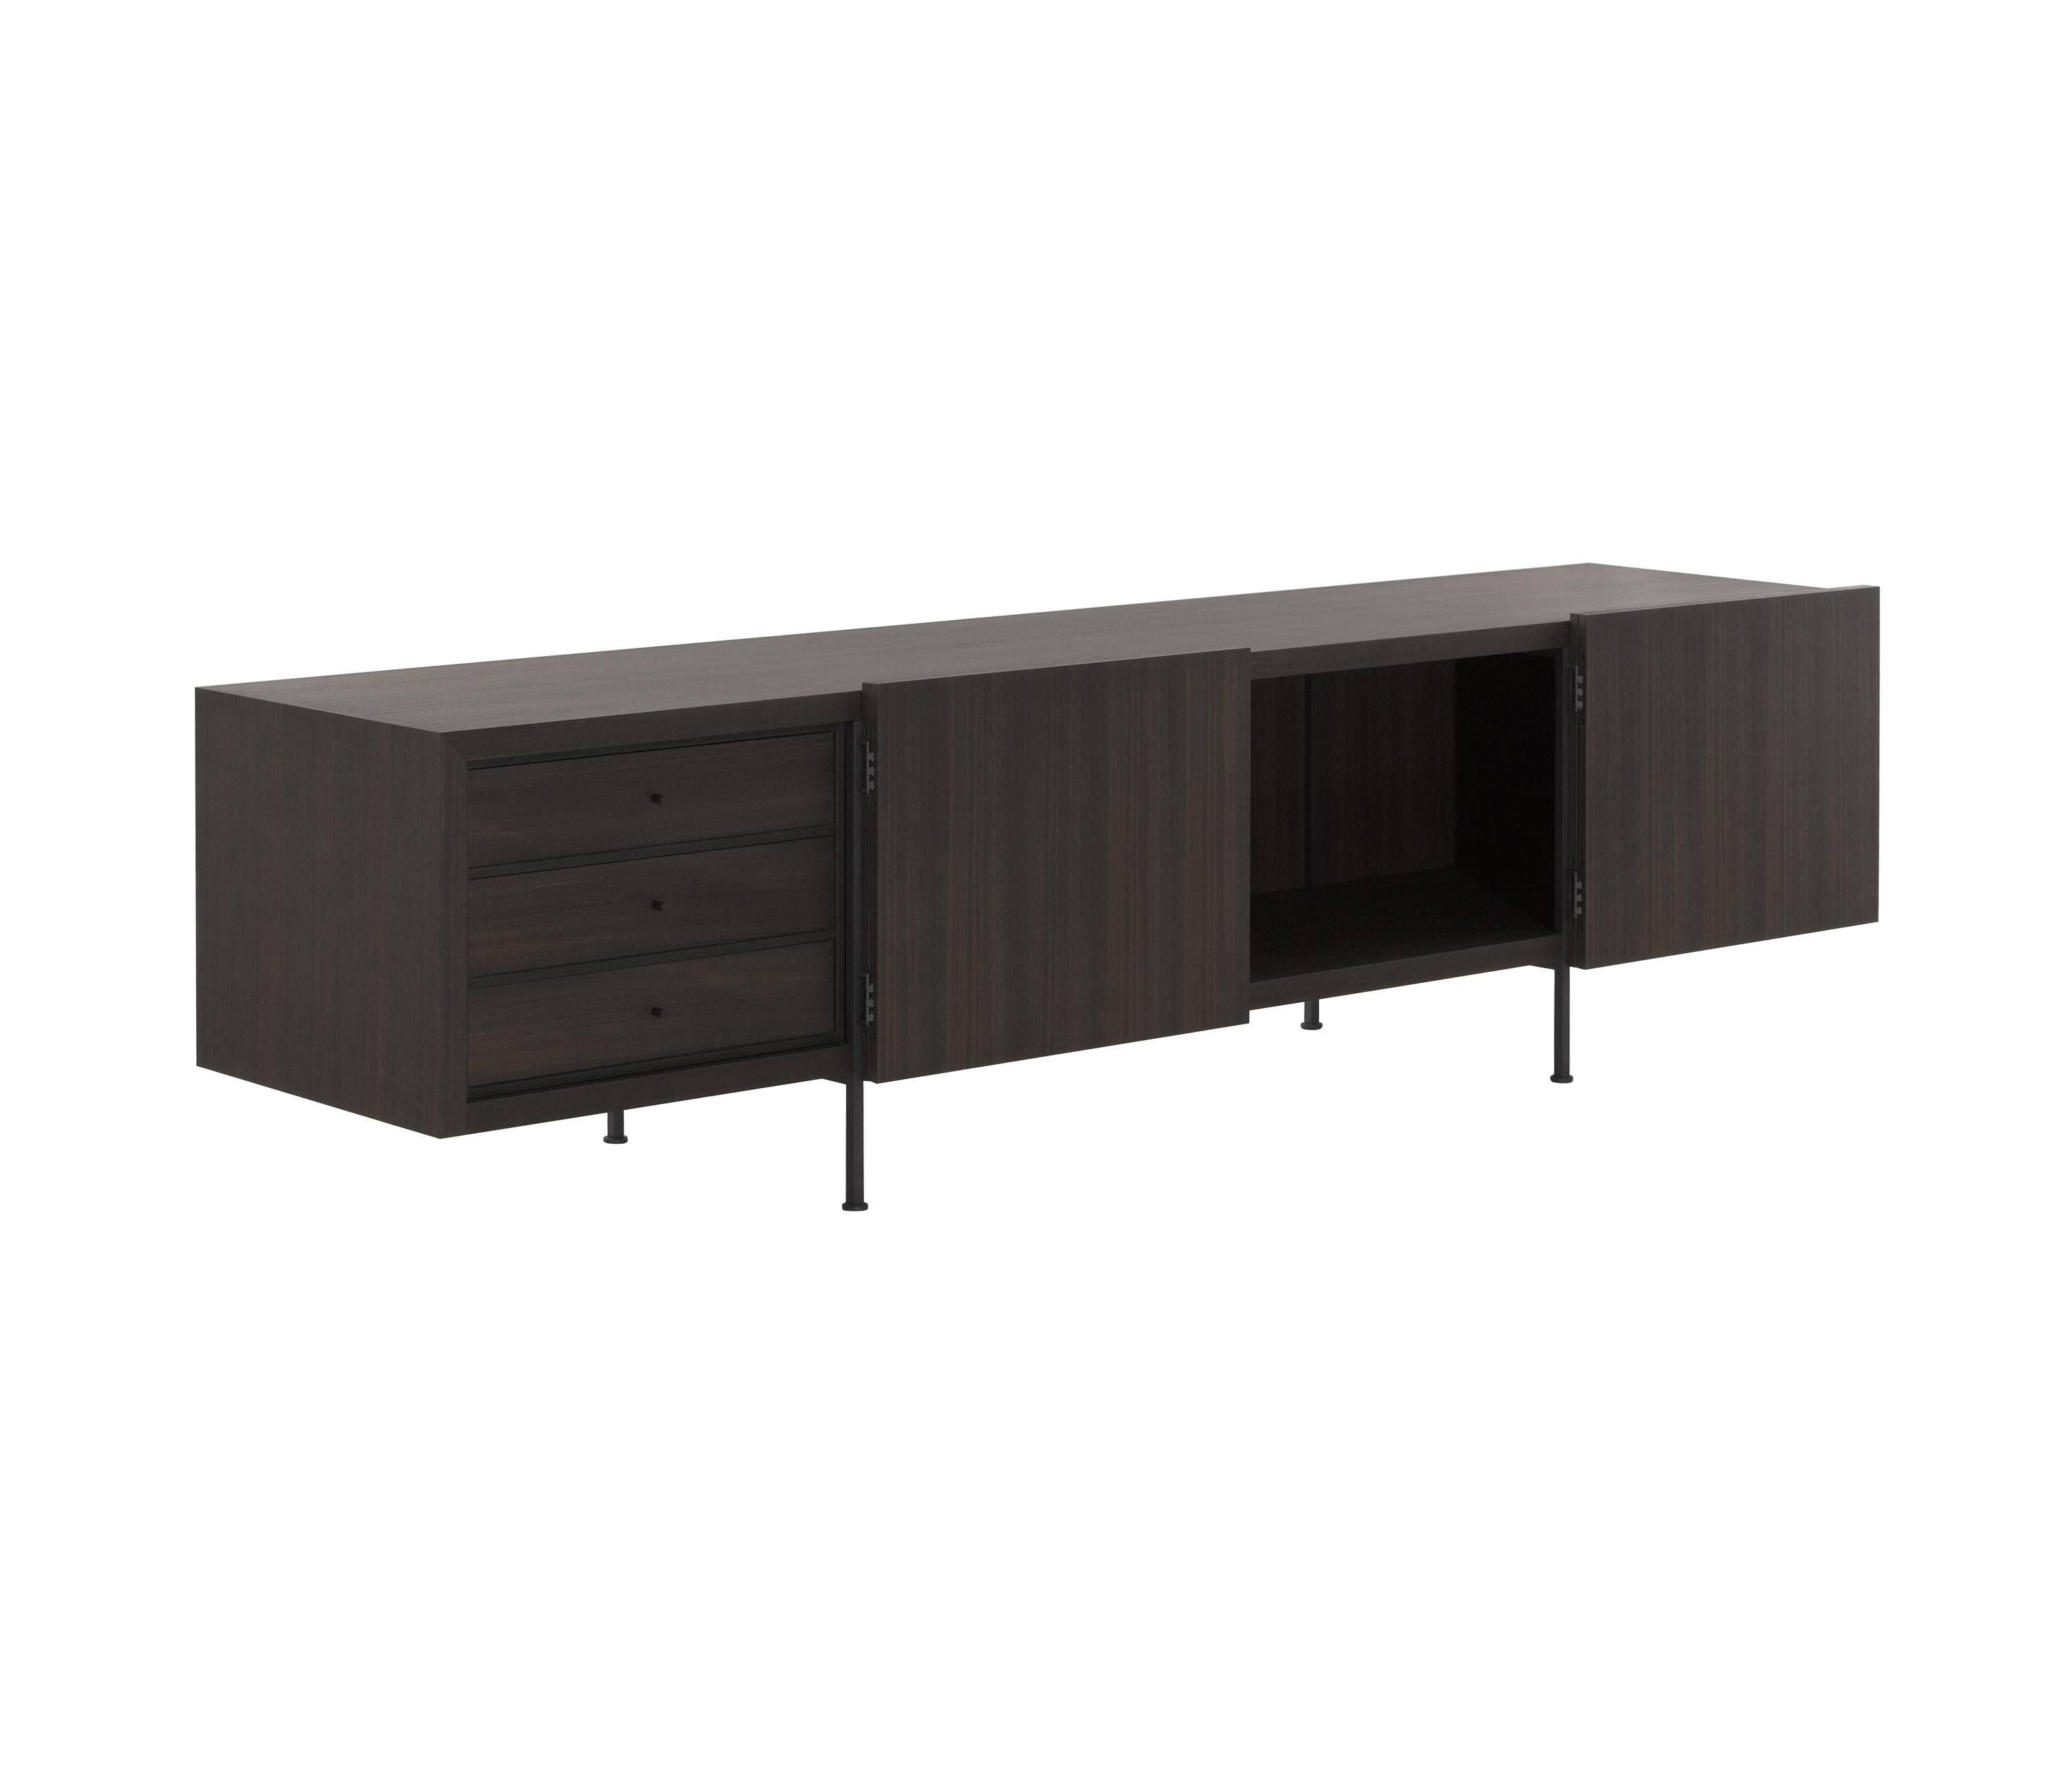 Tiller Horizontal Sideboard – Sideboards From Porro | Architonic Inside Newest Joop Sideboards (#14 of 15)